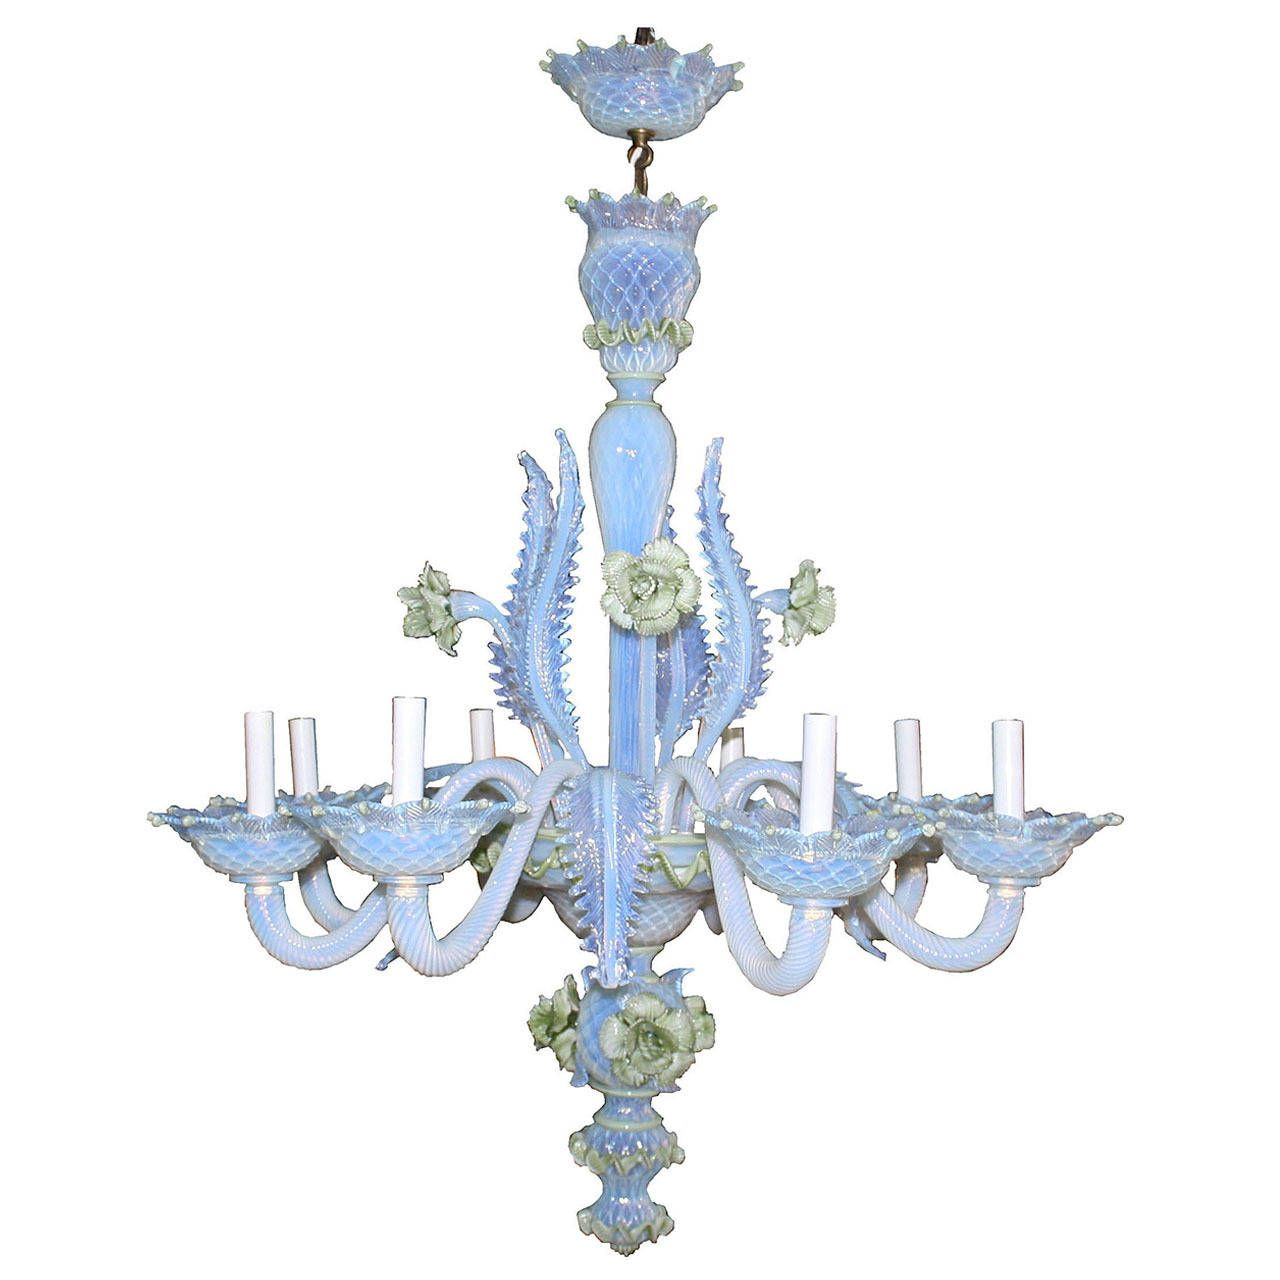 19th century murano glass ciocca chandelier murano glass 19th century murano glass ciocca chandelier arubaitofo Images